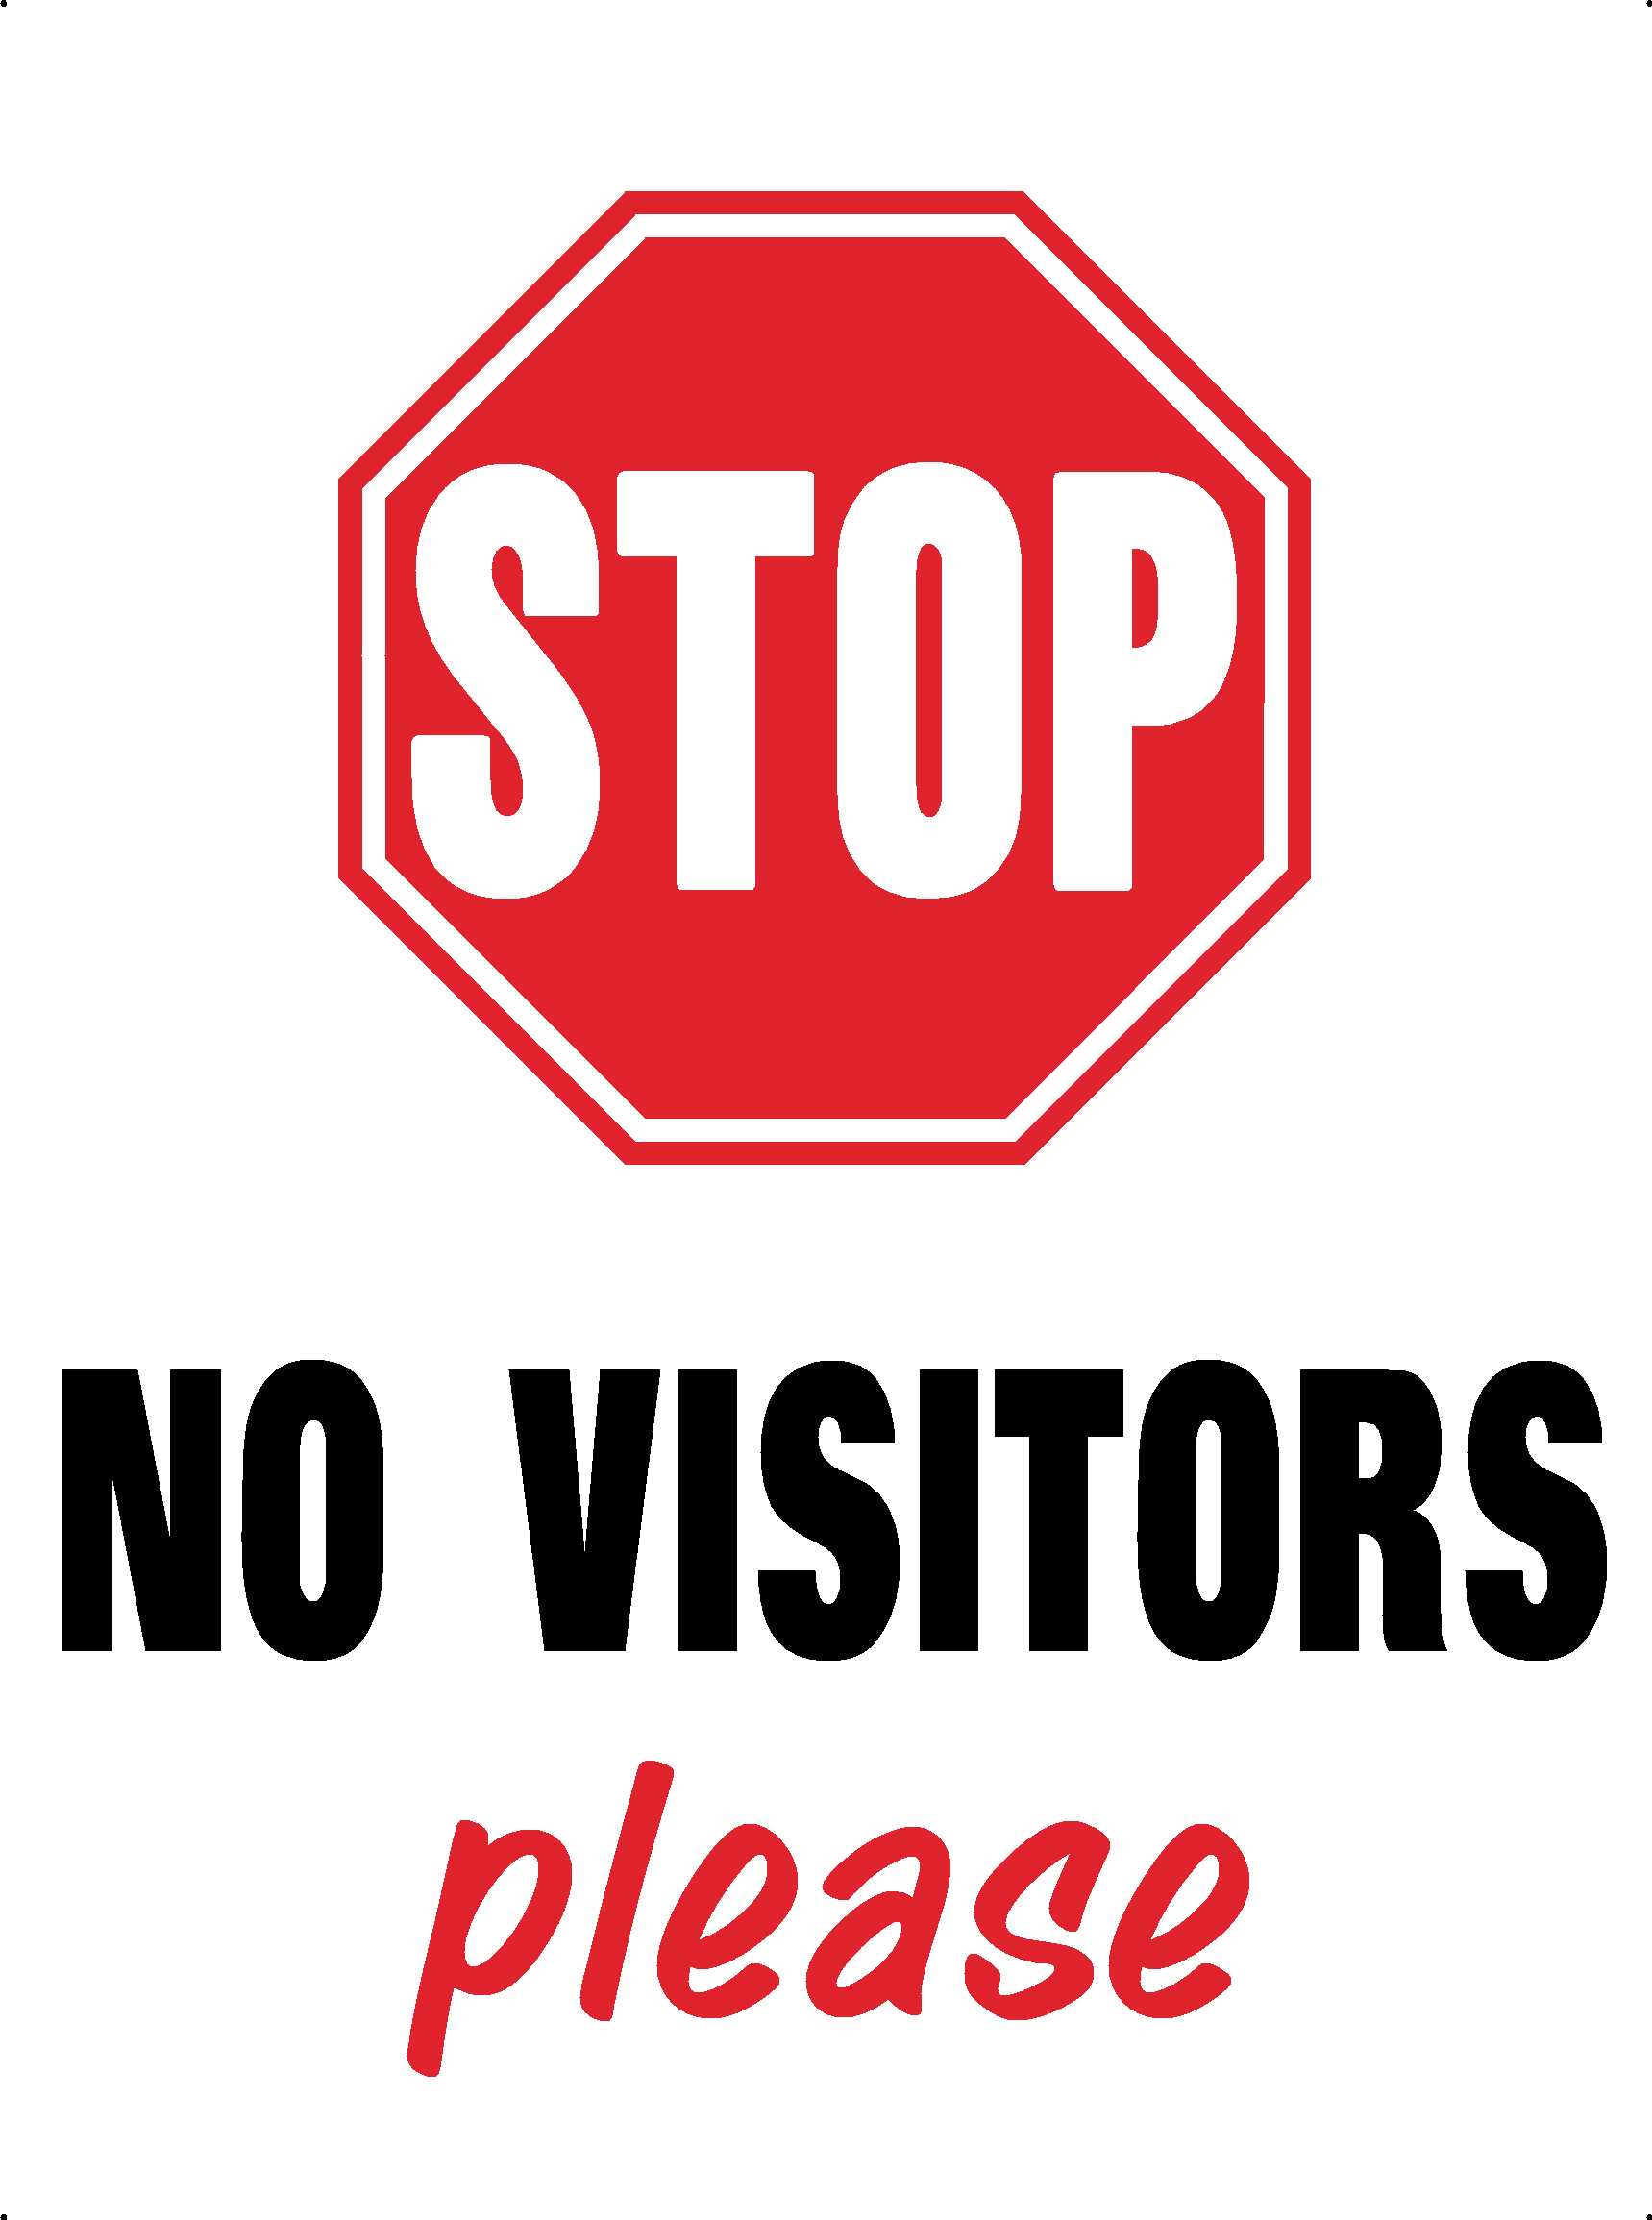 NO VISITORS PLEASE SIGN